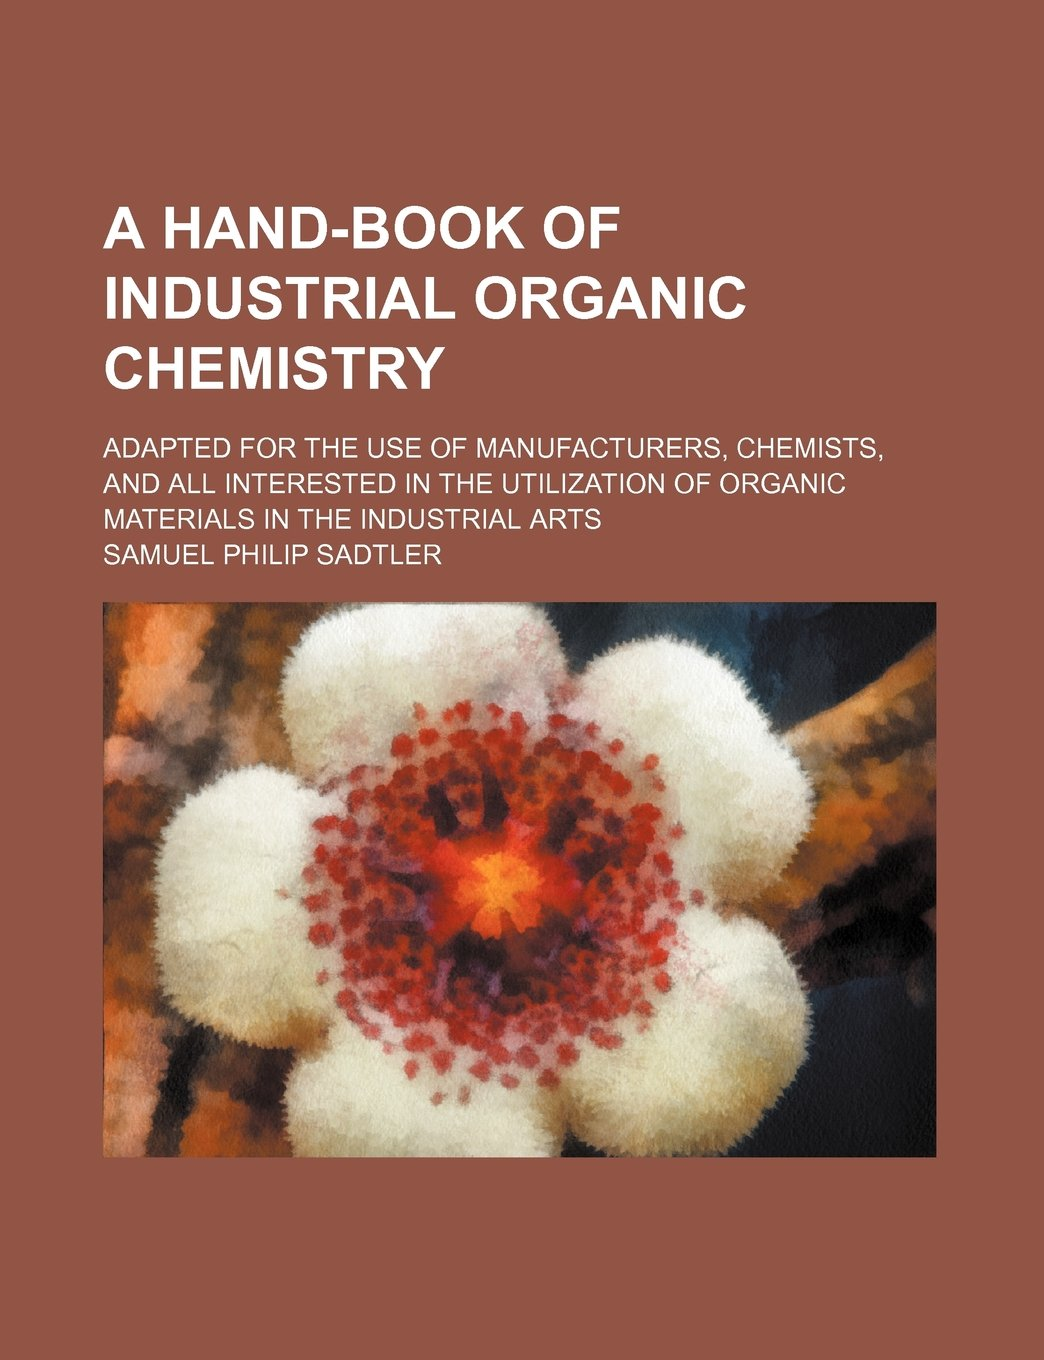 Download A hand-book of industrial organic chemistry; adapted for the use of manufacturers, chemists, and all interested in the utilization of organic materials in the industrial arts PDF